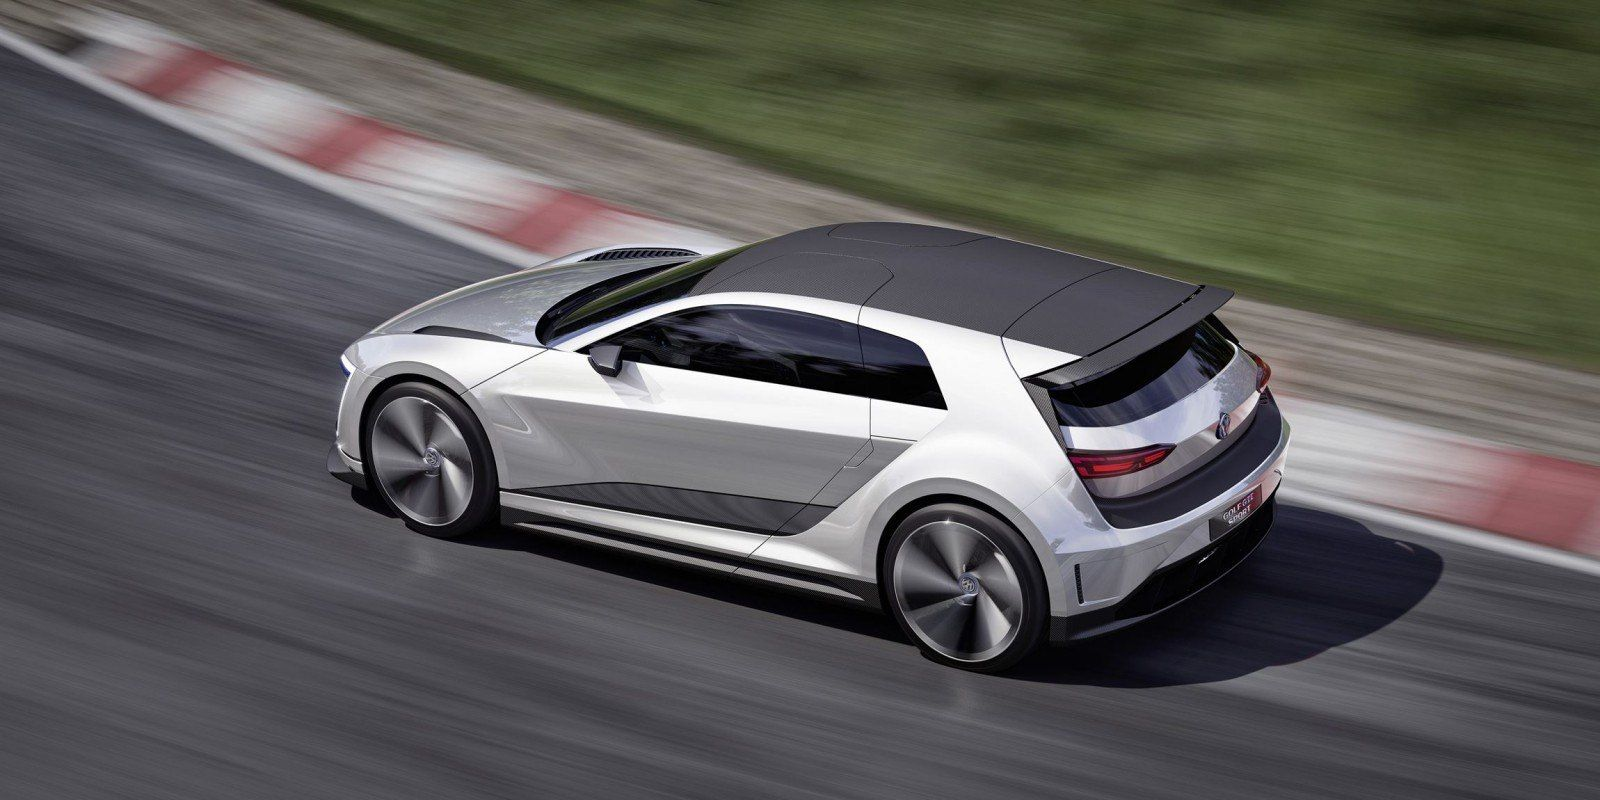 2015 Vw Golf Gte Sport Concept 2016 Gti Clubsport Production